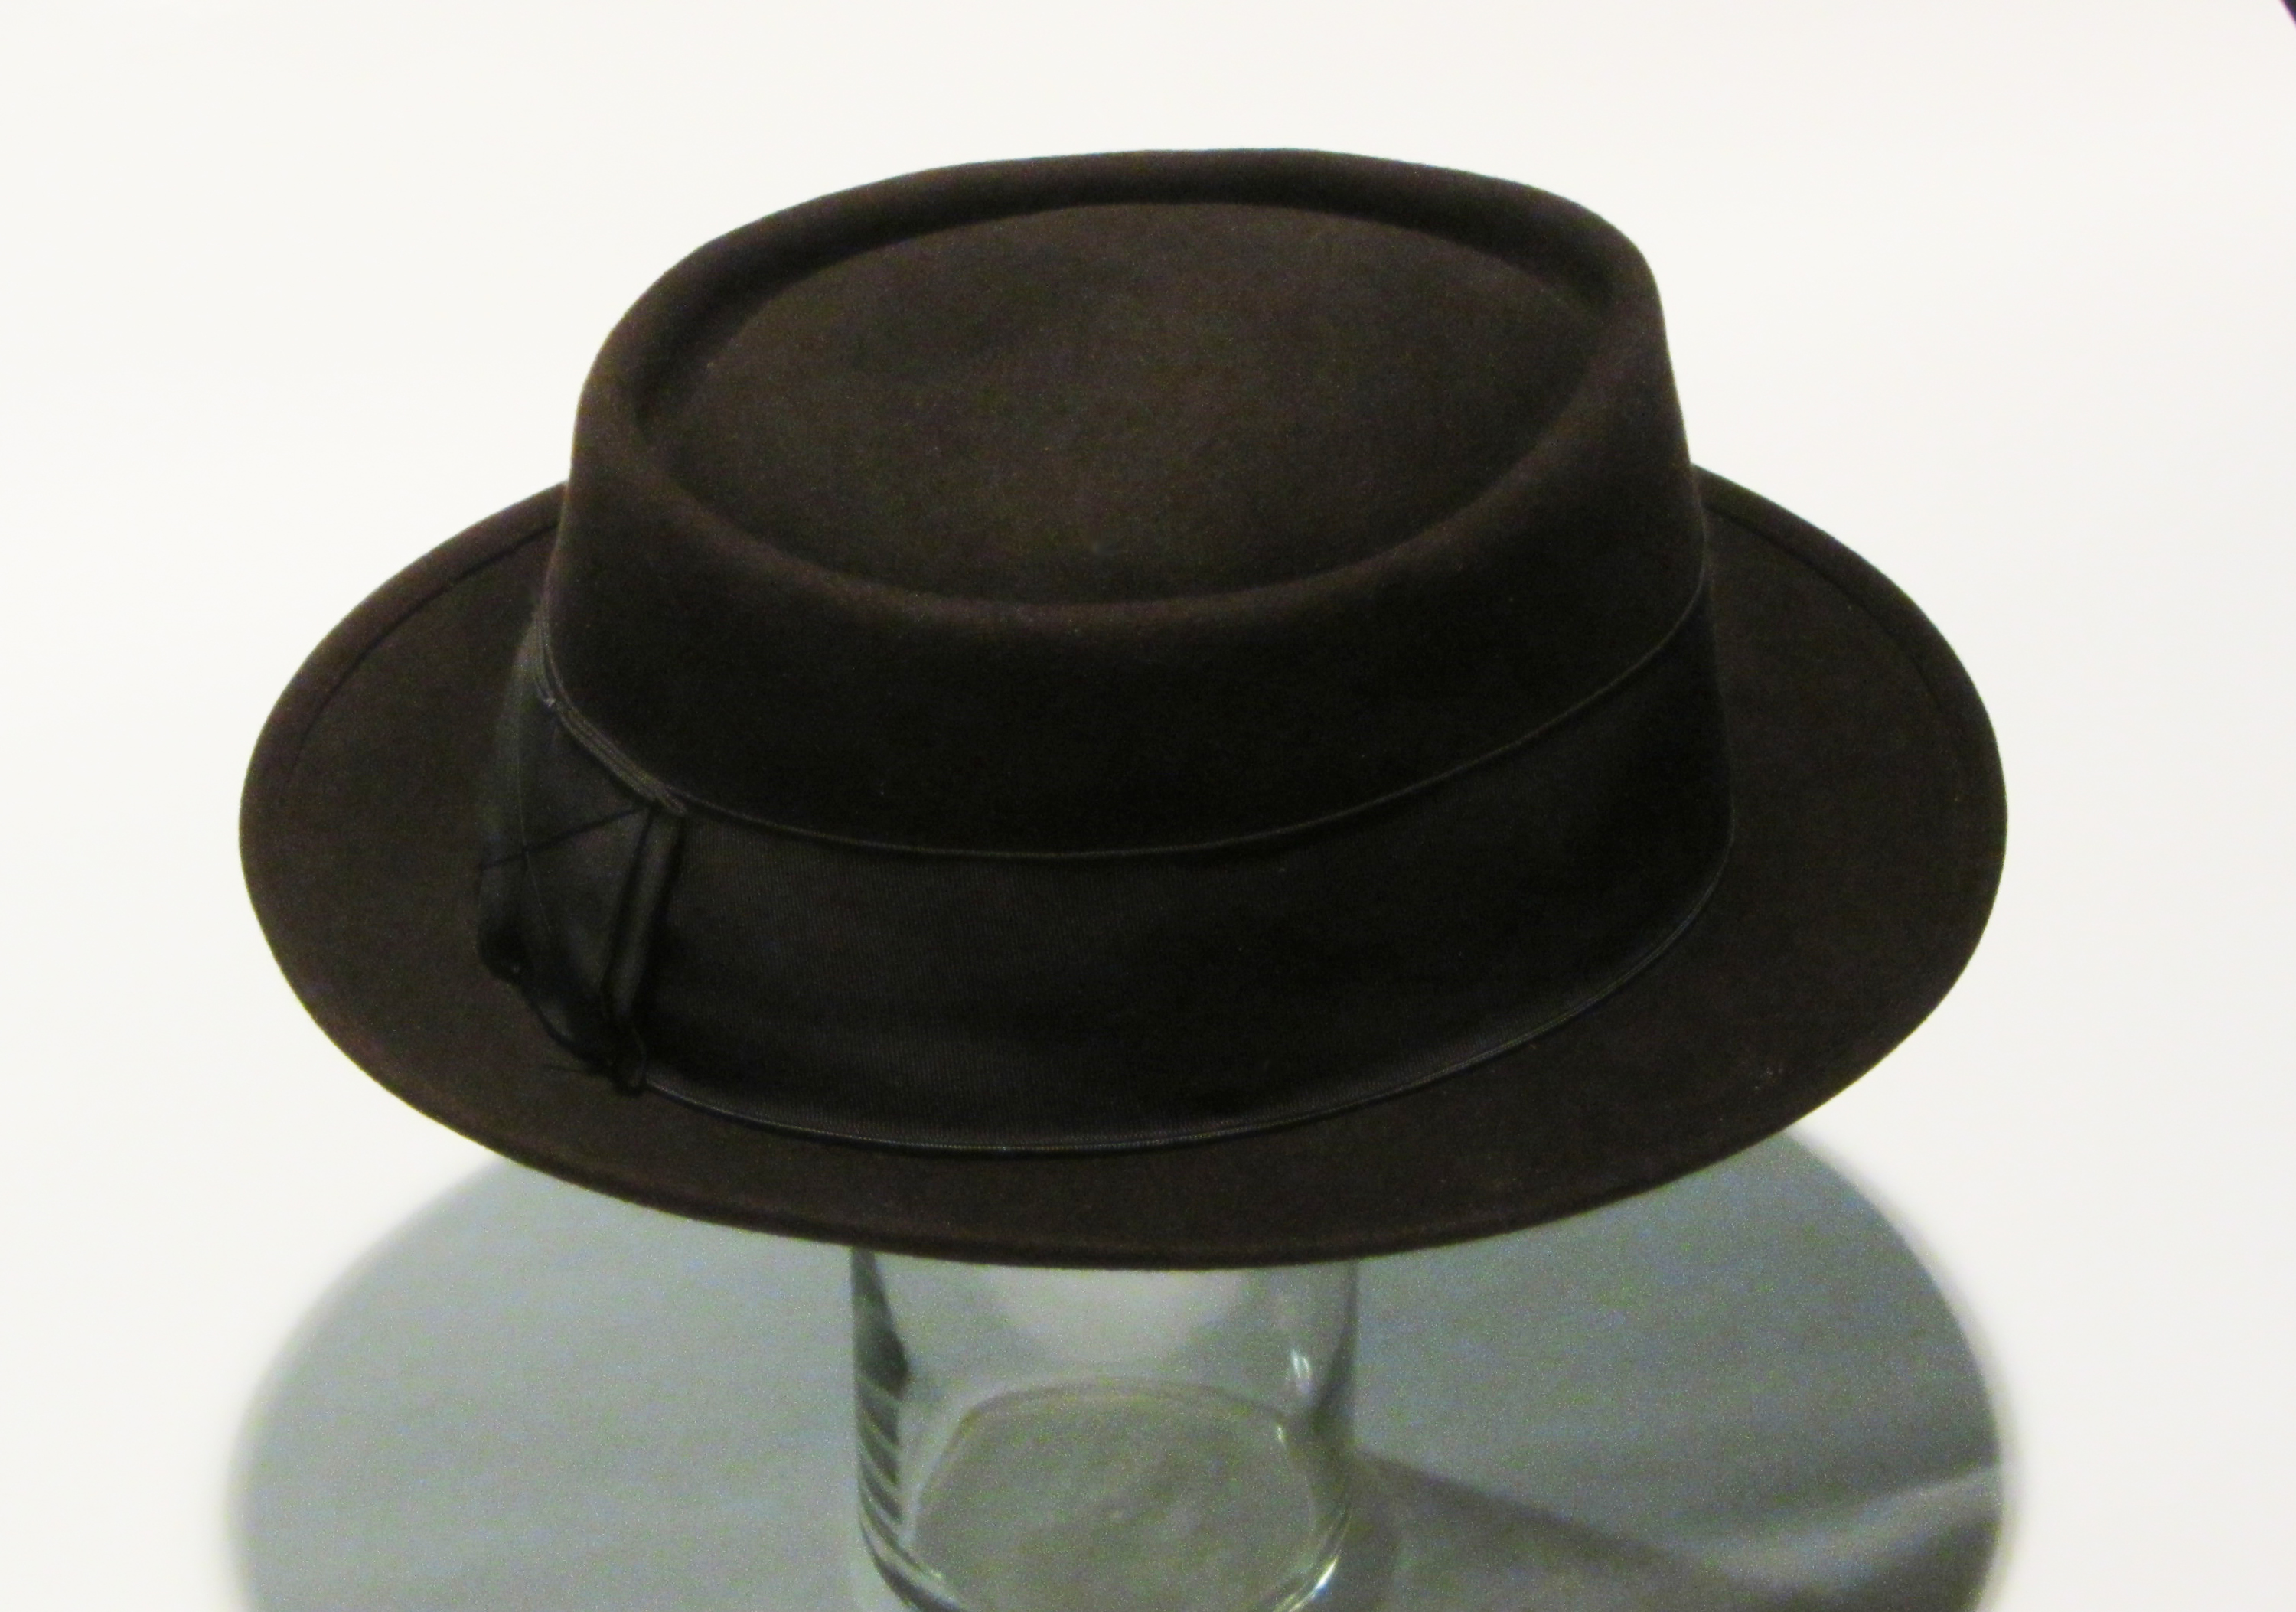 f53a72e22d0fd Pork pie hat - Wikipedia